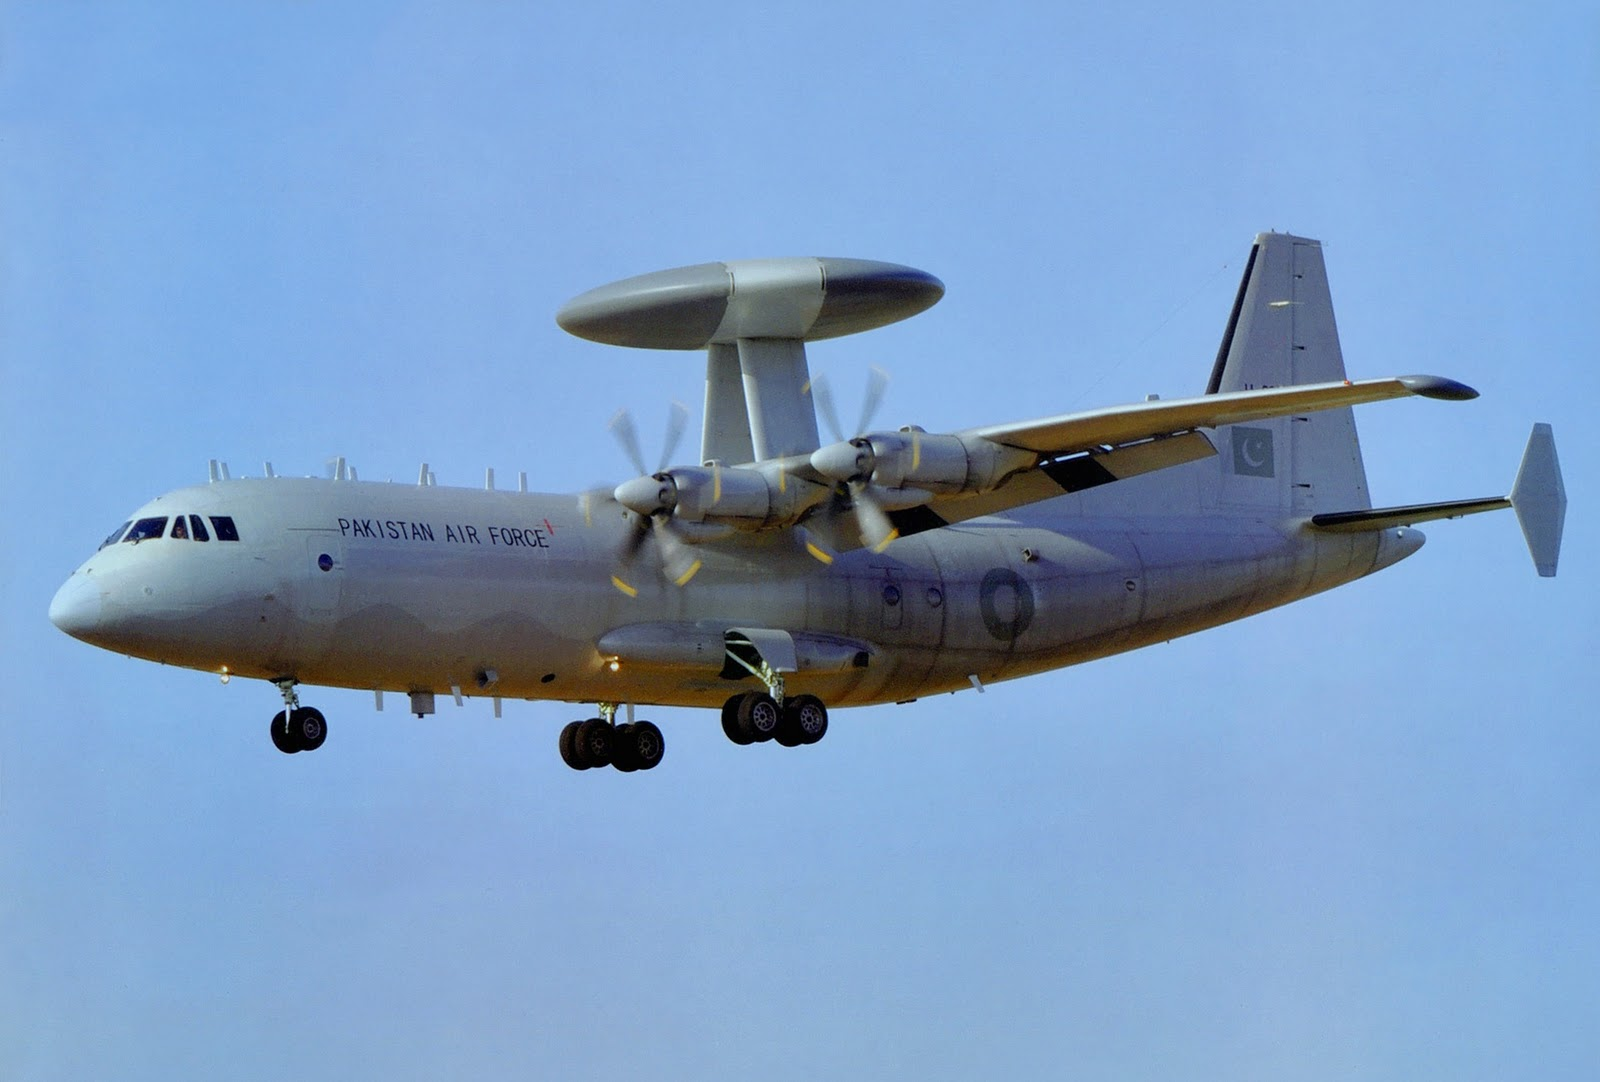 Aircraft is capable of detecting hostile aerial, sea surface targets far before ground-based radars. PHOTO COURTESY: ASIAN DEFENCE